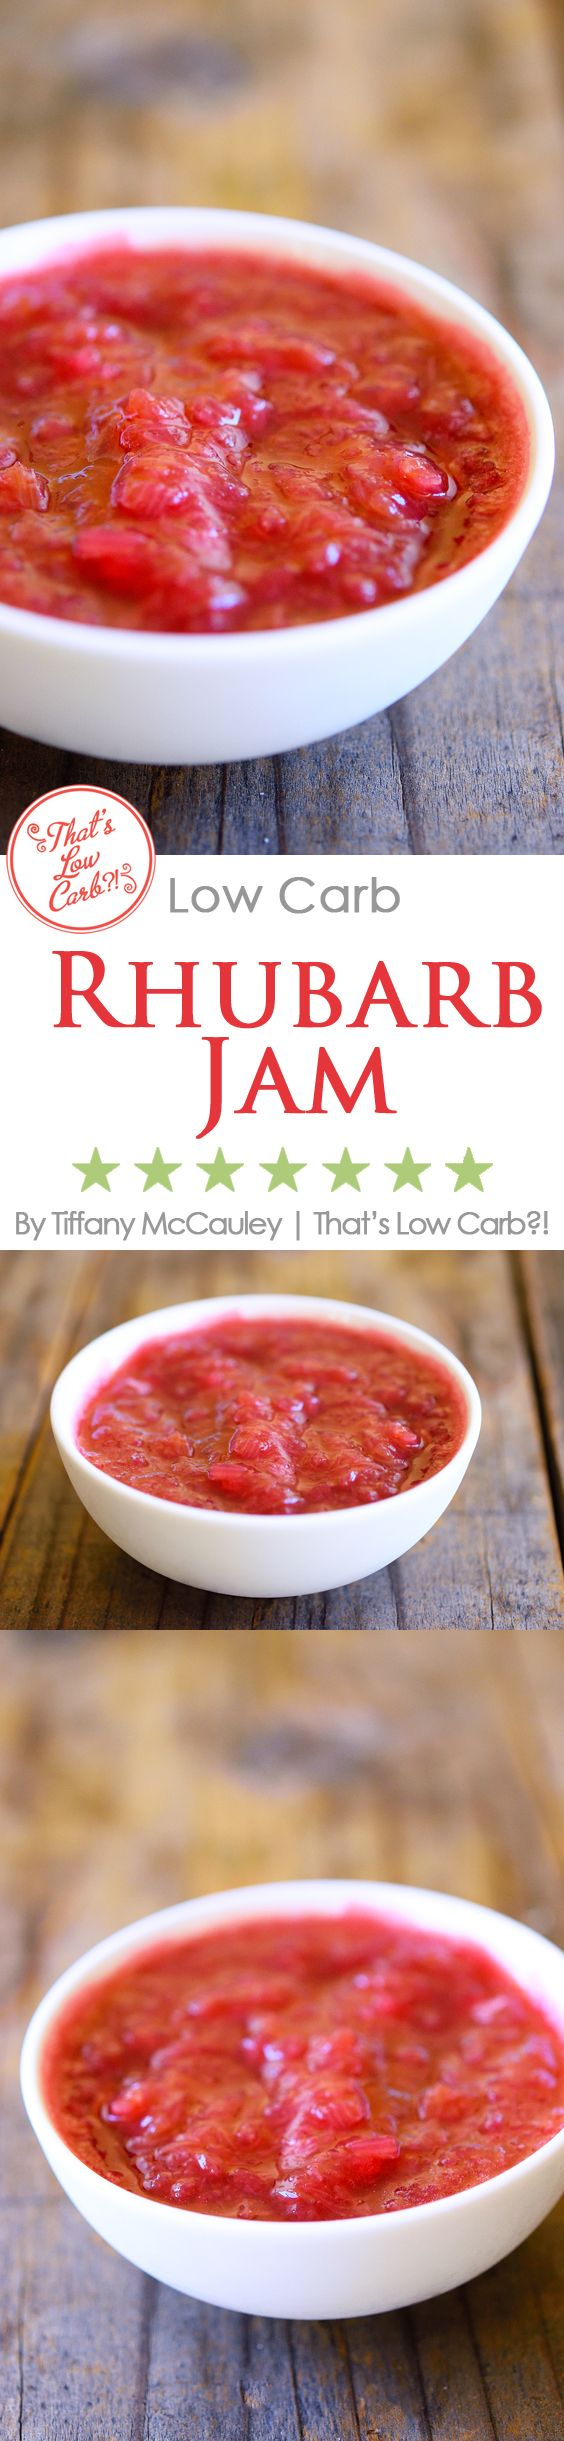 Low Carb Recipes | Rhubarb Compote | Low Carb Compote ~ https://www.thatslowcarb.com